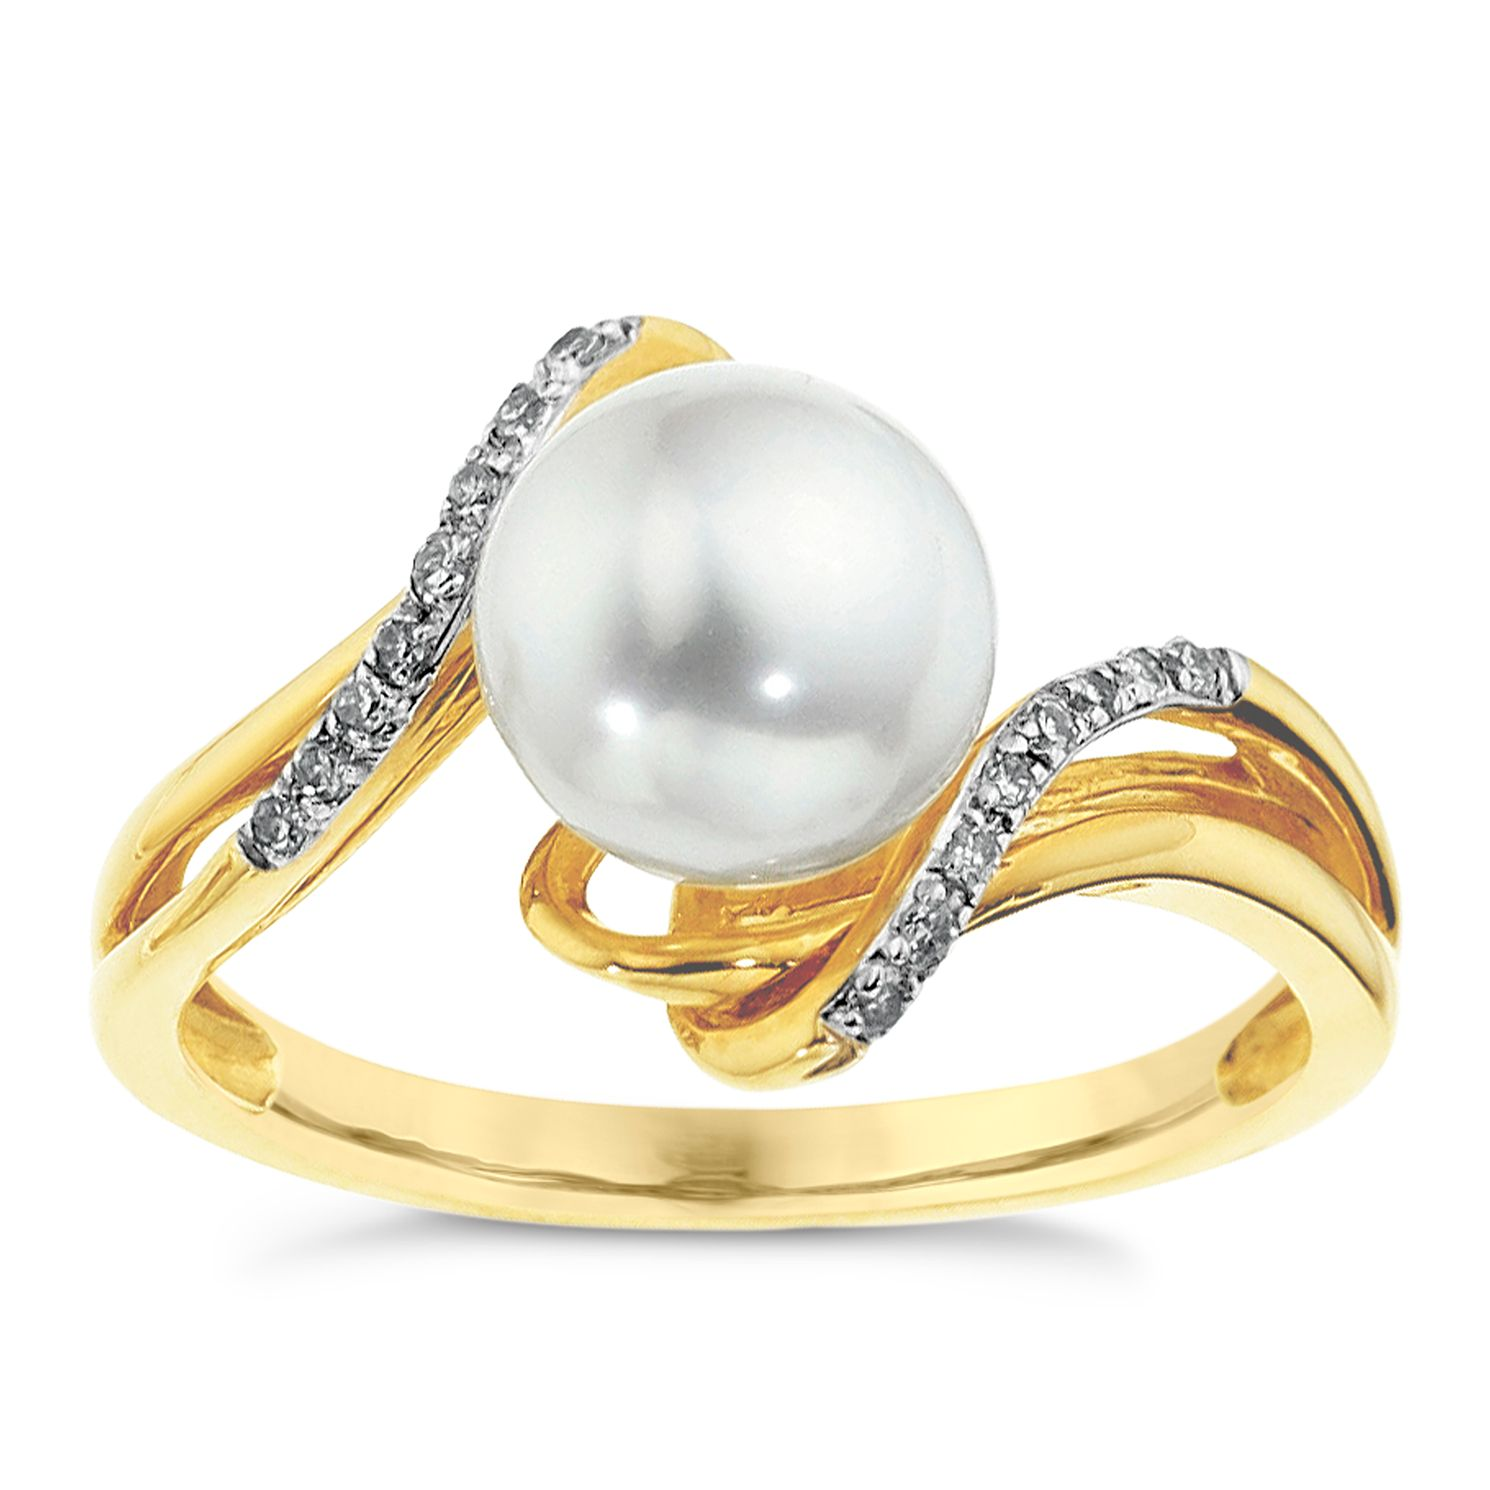 9ct Yellow Gold Cultured Freshwater Pearl & Diamond Ring - Product number 8545014